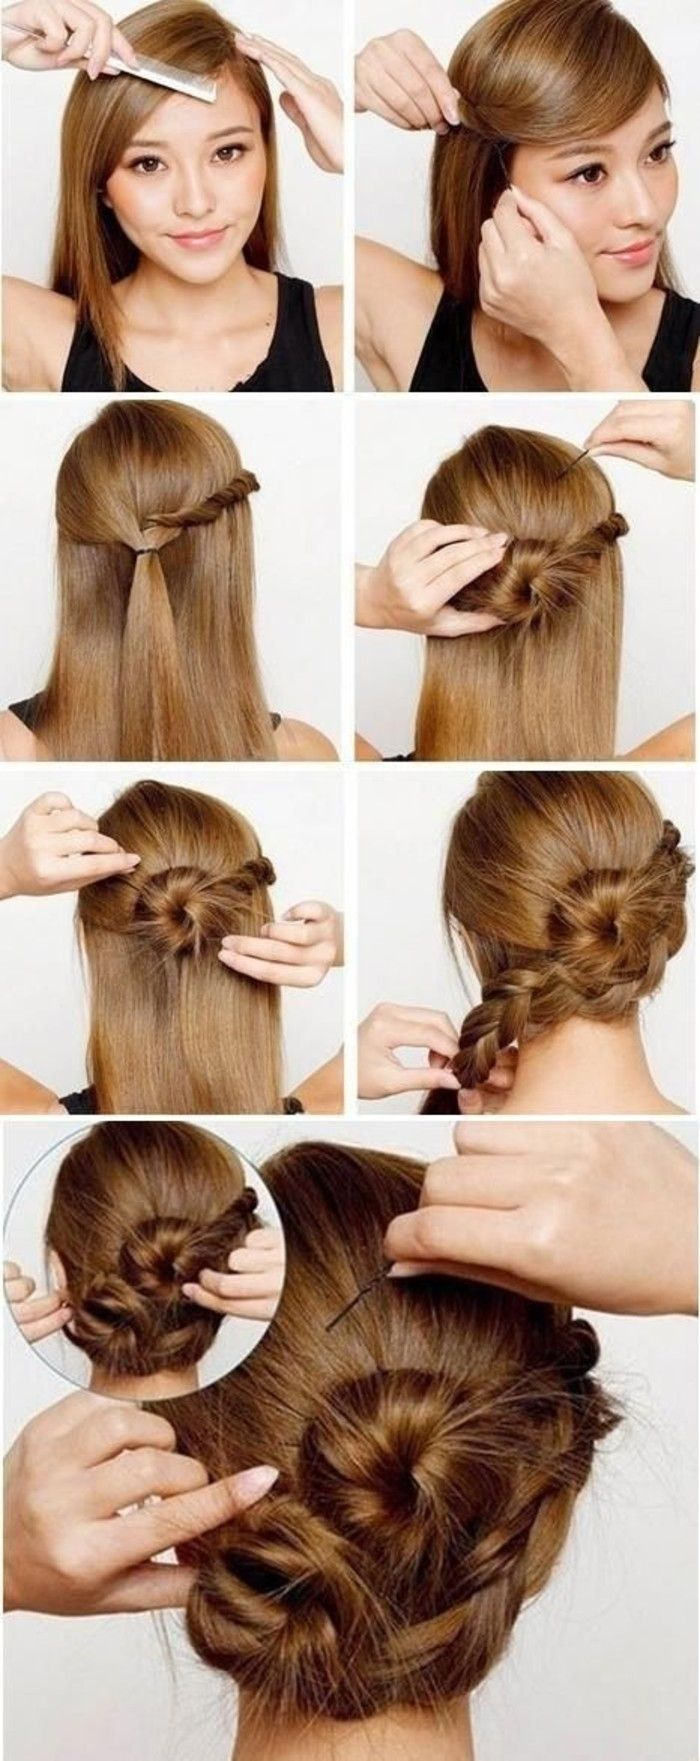 2016 Summer Braided Hairstyles Tutorial Hairplusbase Hair Trends